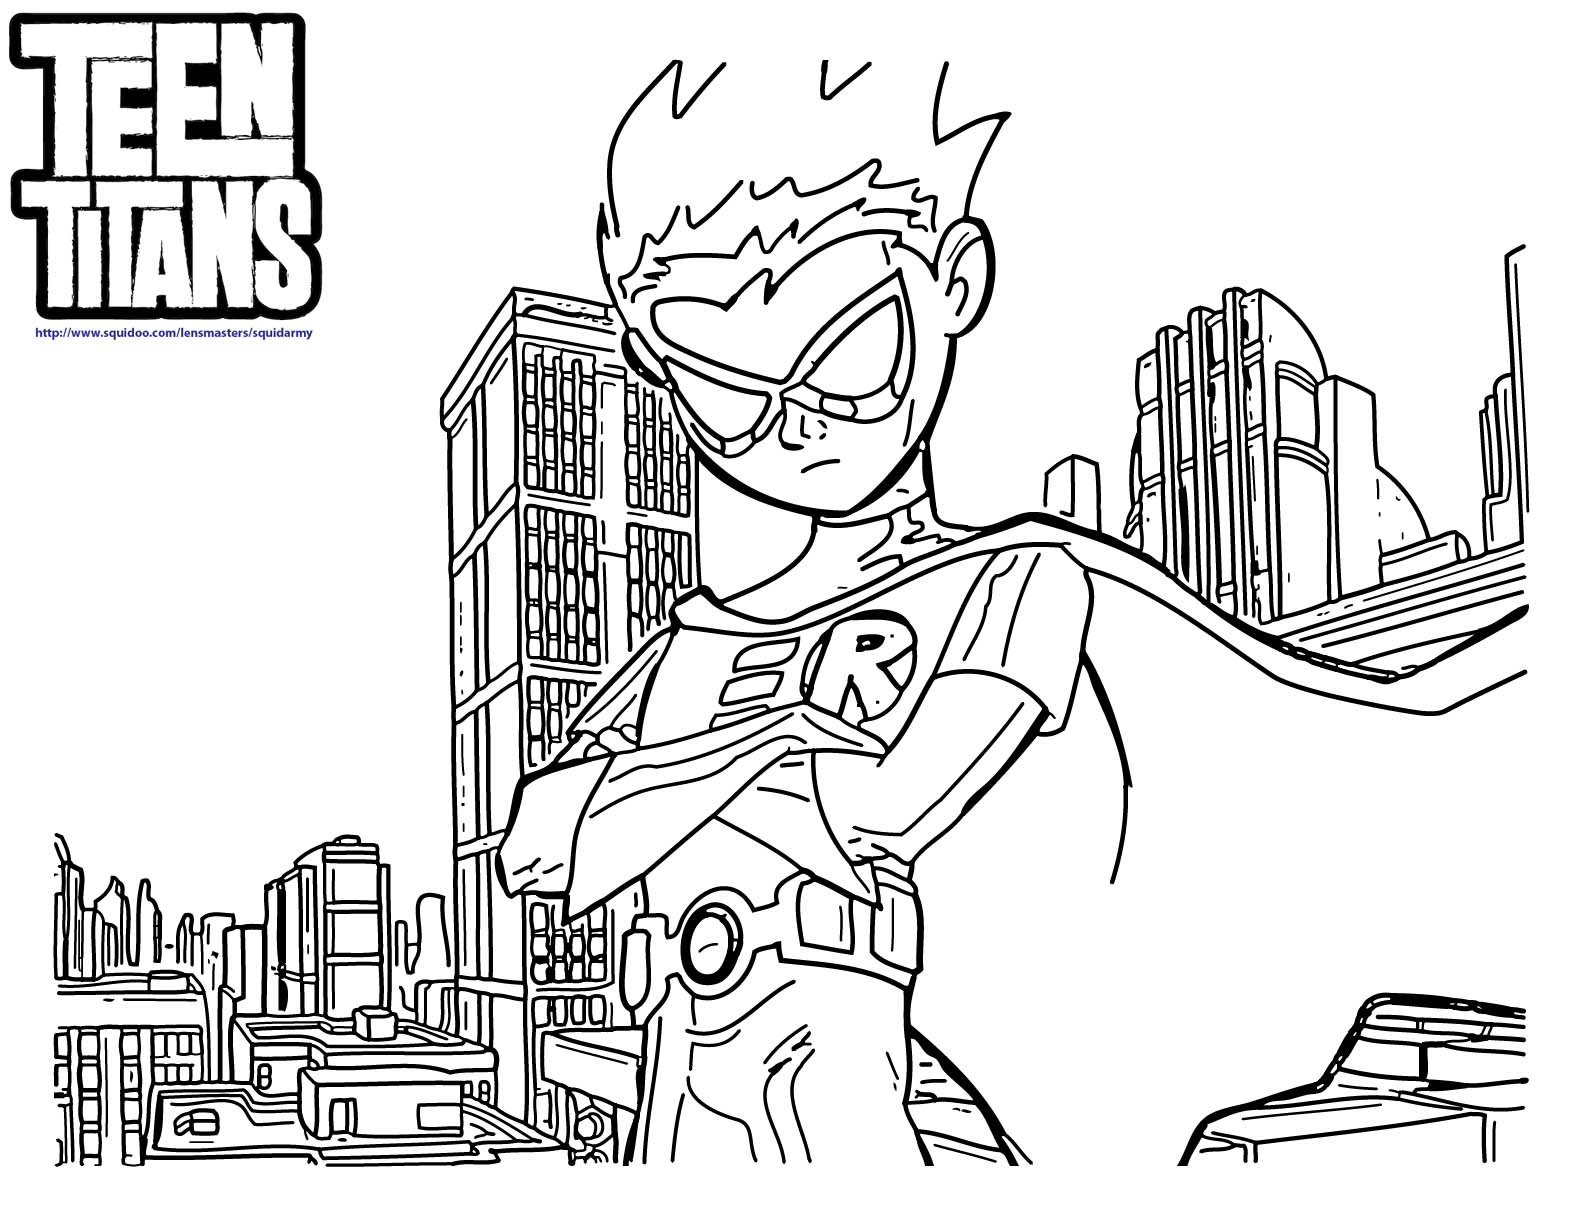 teen titans go color pages froggy goes to school coloring pages color titans teen go pages